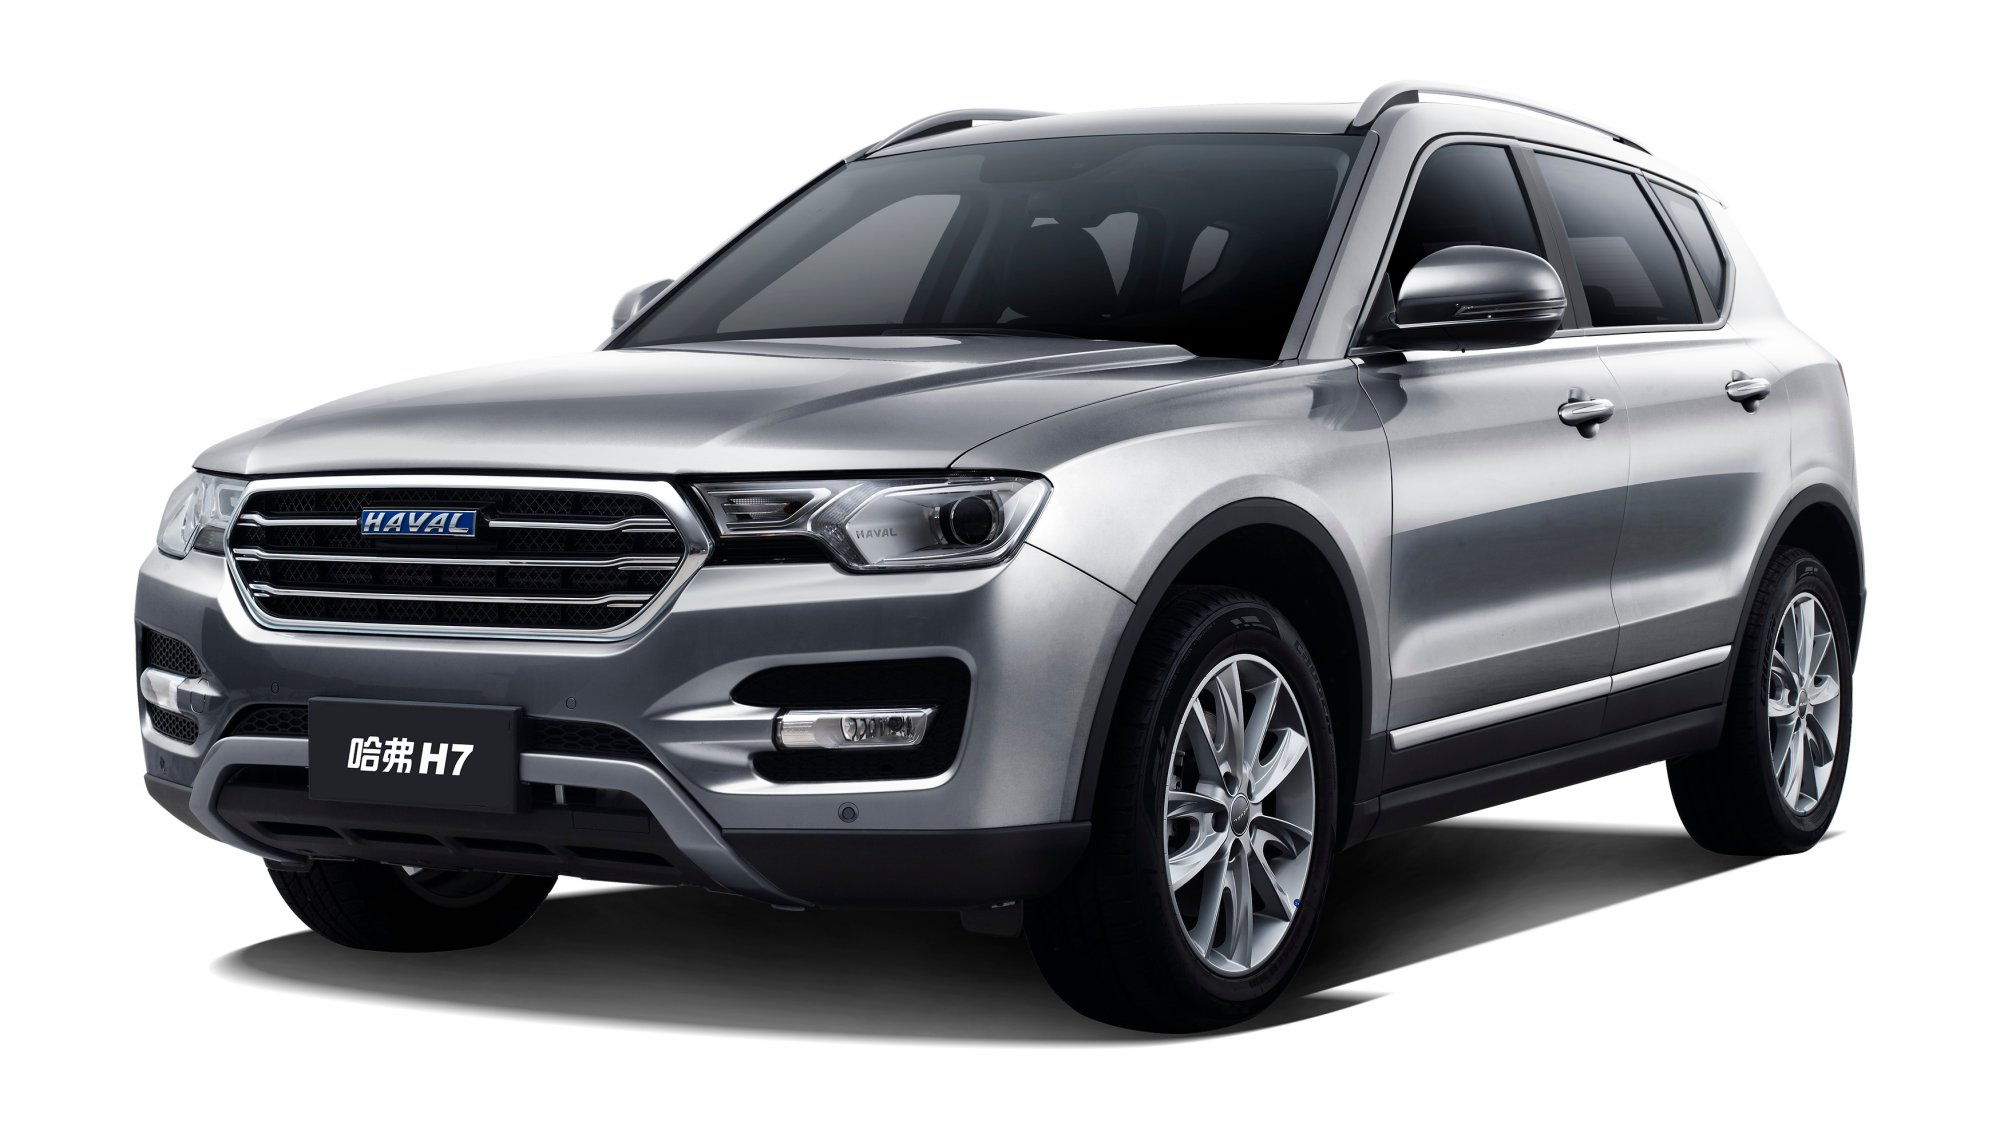 News - 2018 Haval H7, Delayed But Full Of Kit